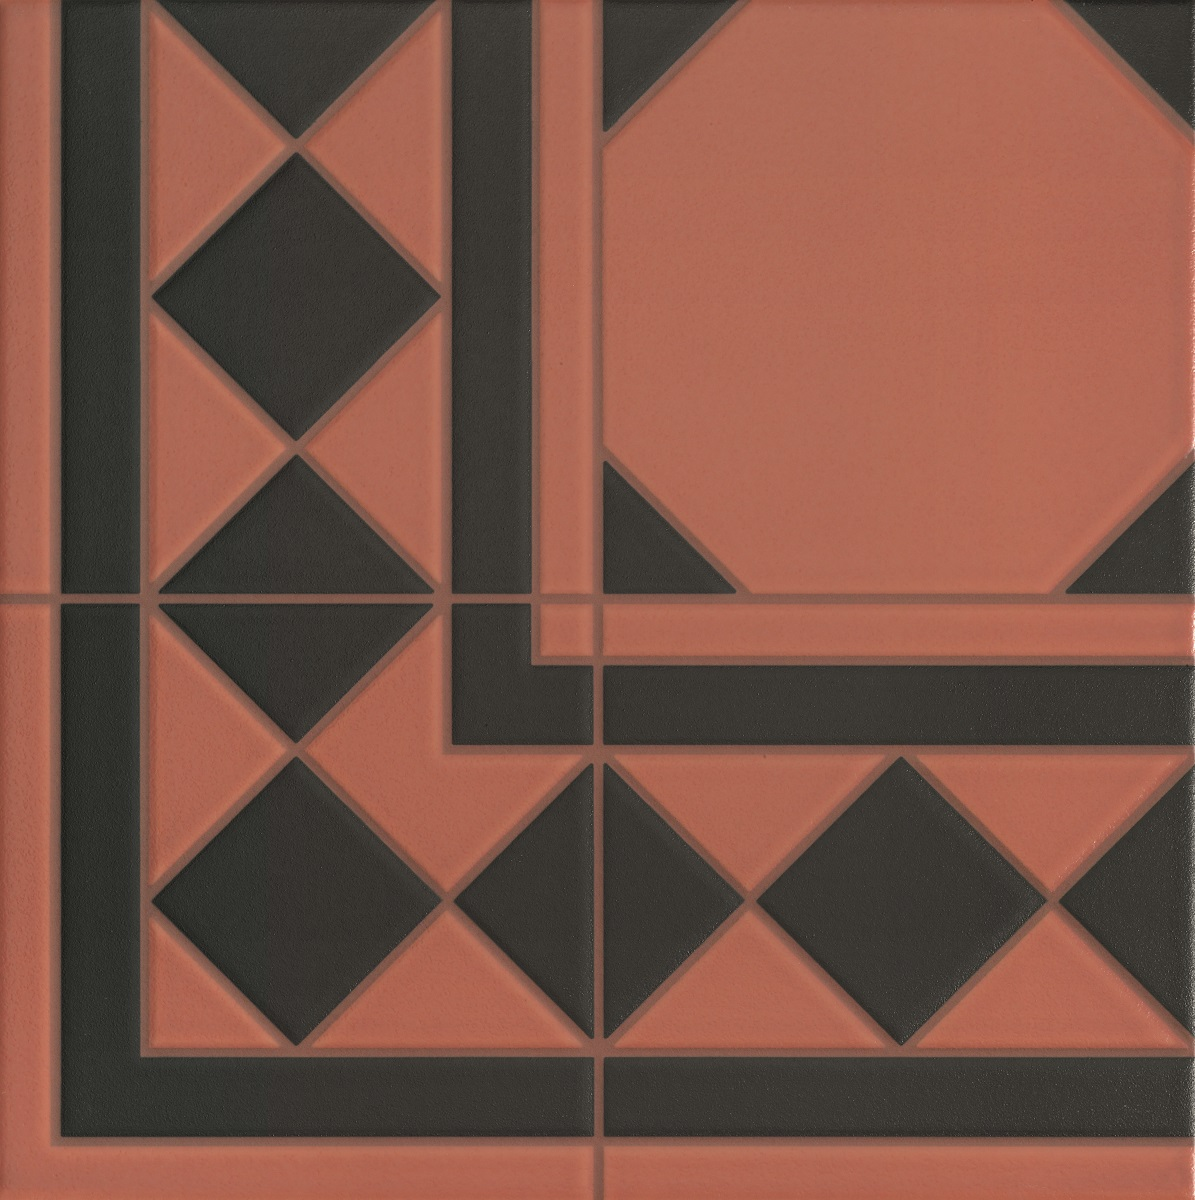 image/catalog/product_series_tiles/721/oxford_esquina_terra_1_smaller_pixel.jpg